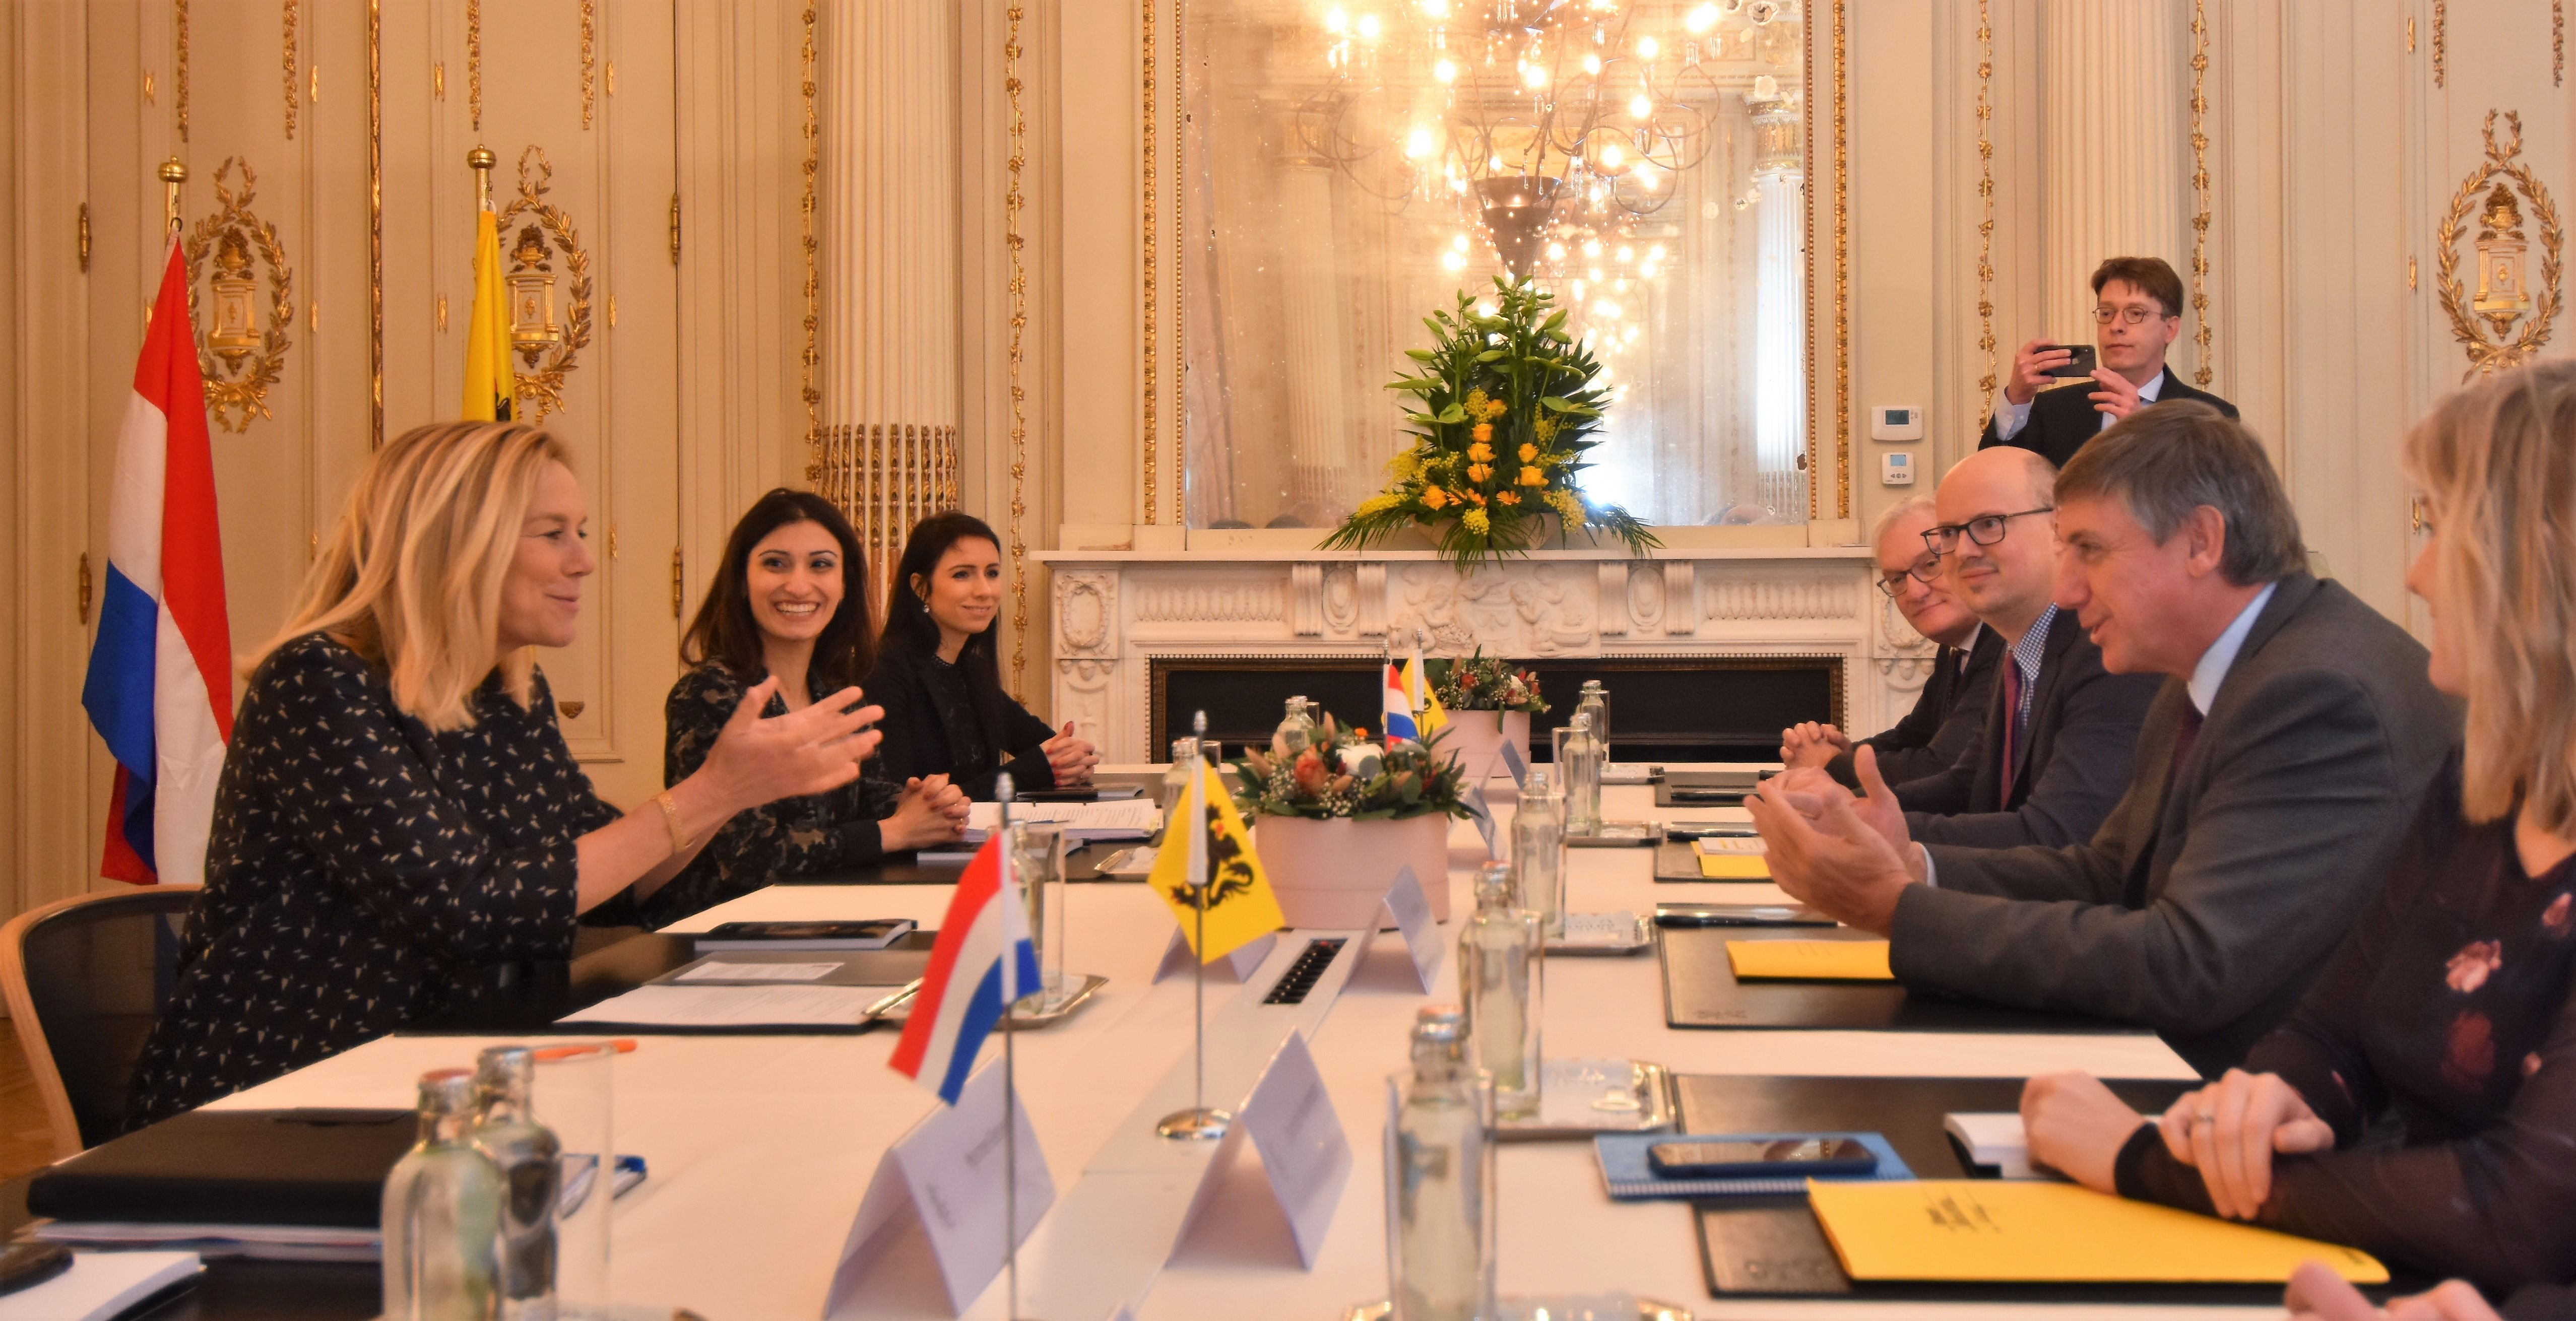 meeting Dutch  minister Kaag and minister-president Jambon